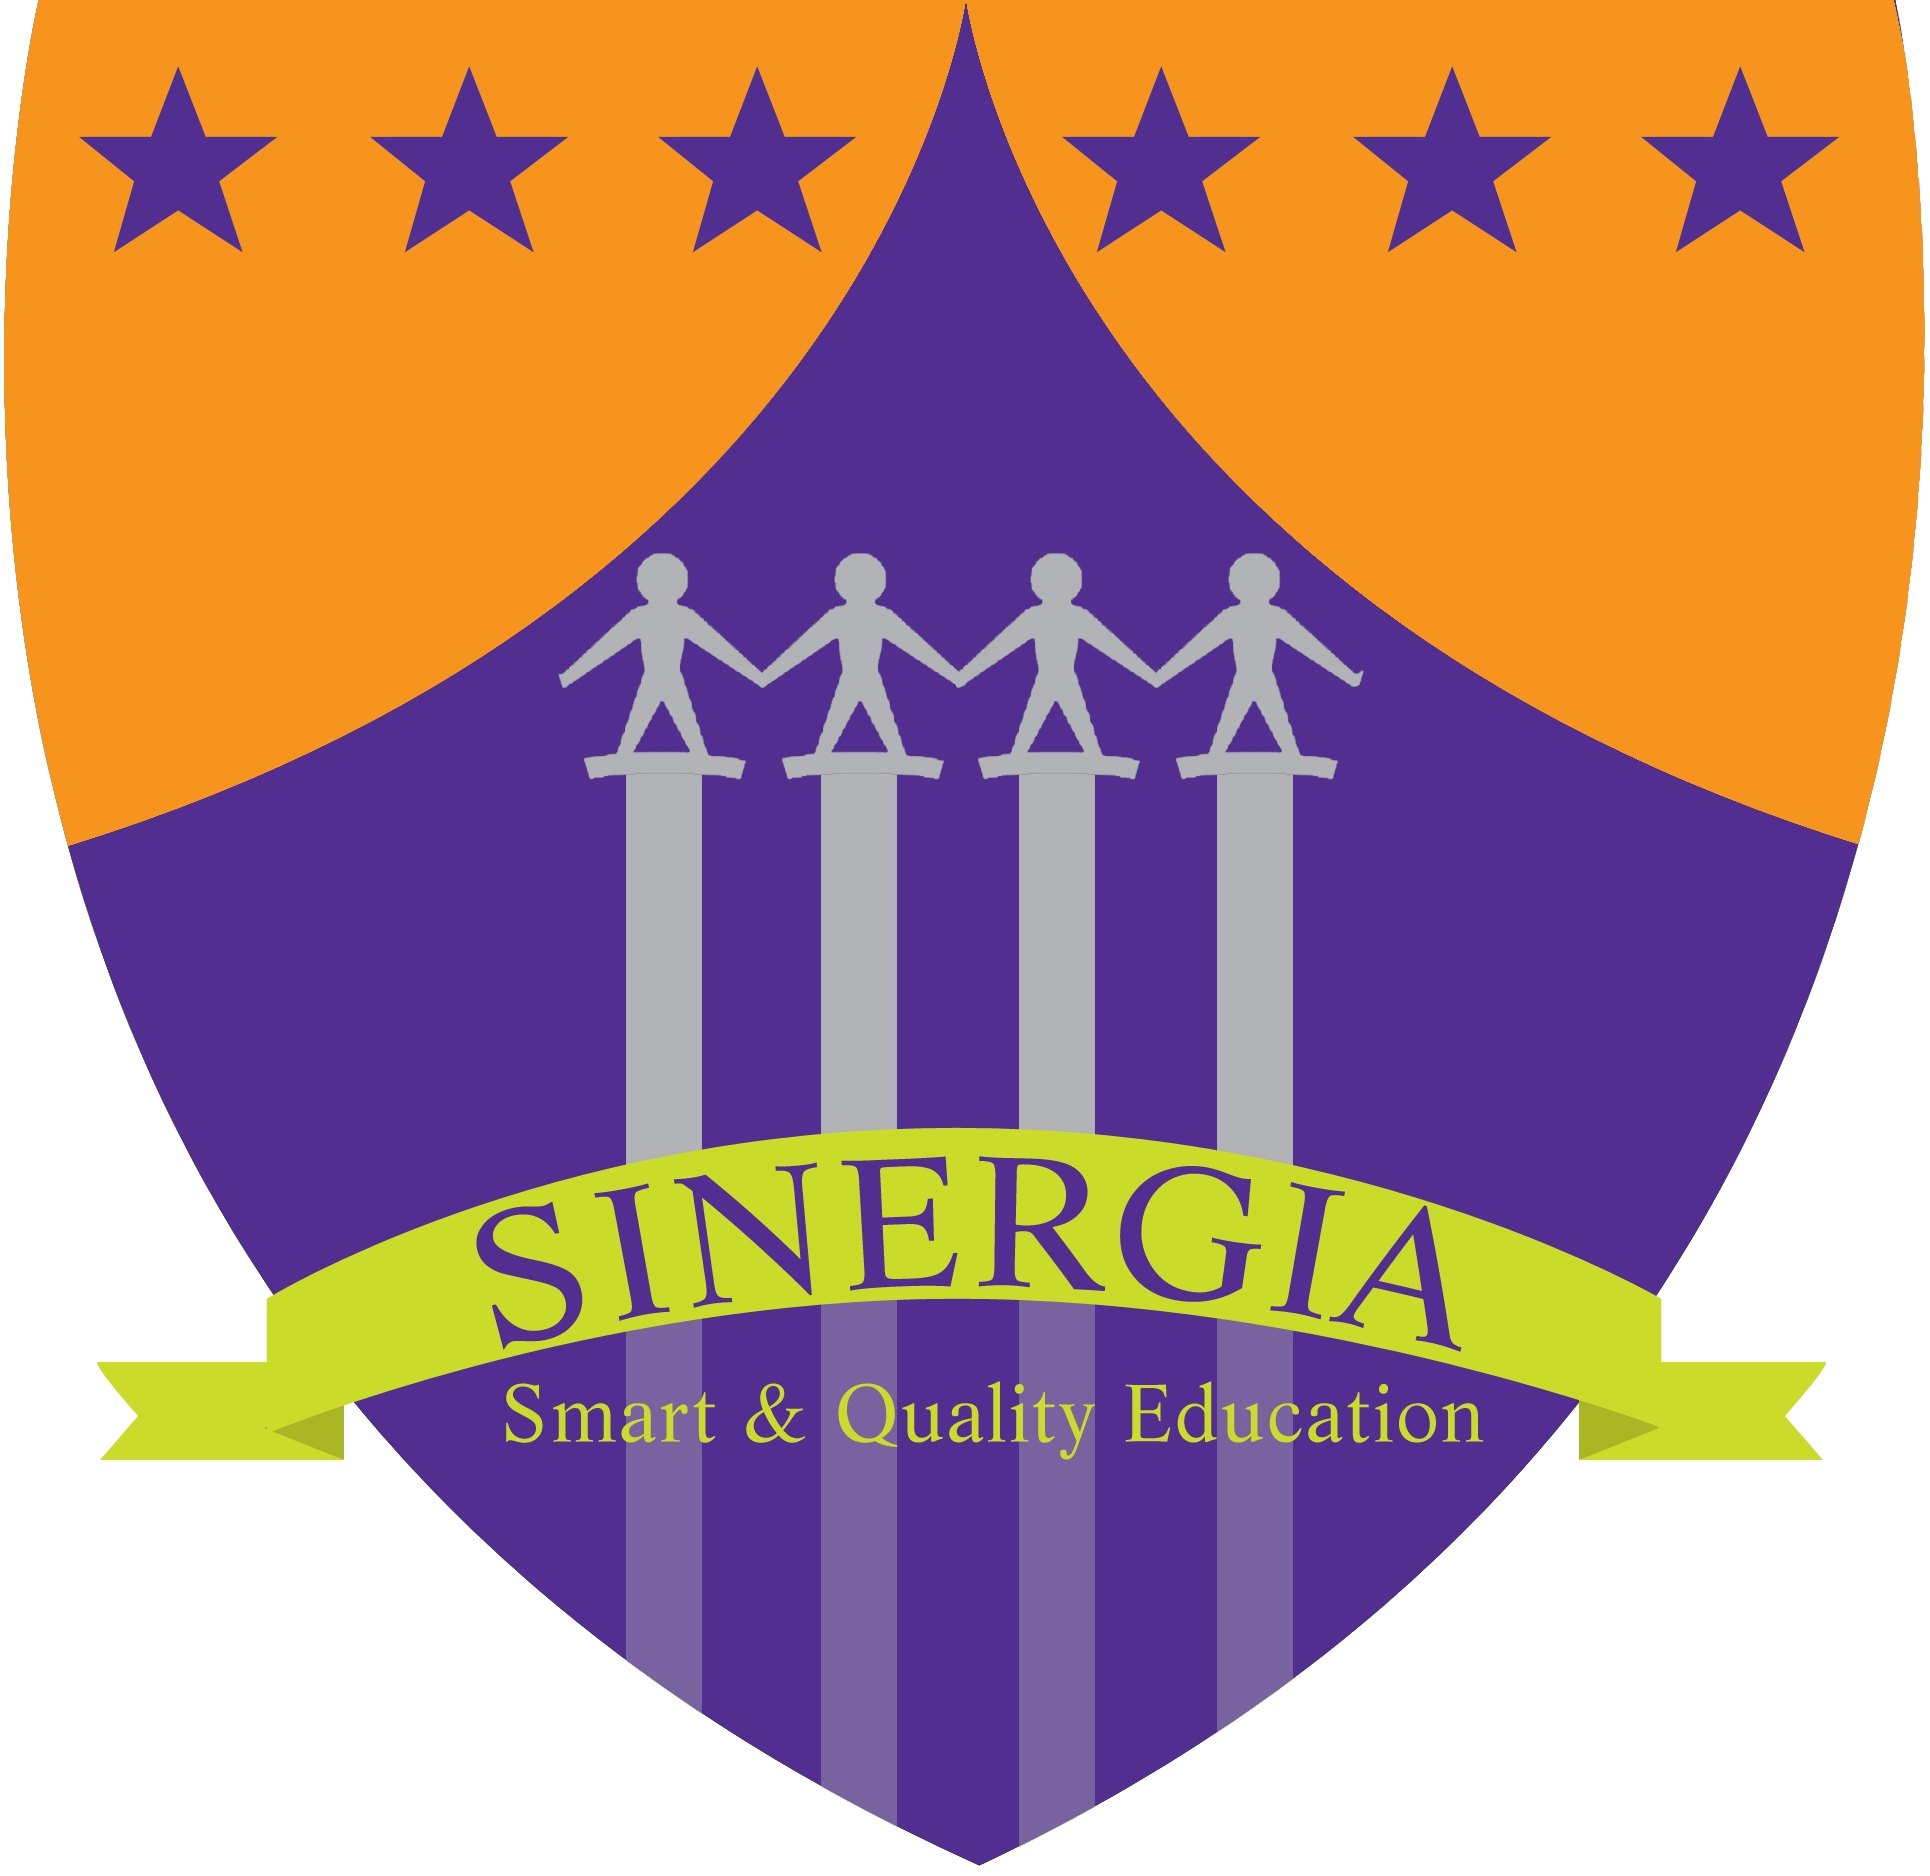 Sinergia Worldwide Education